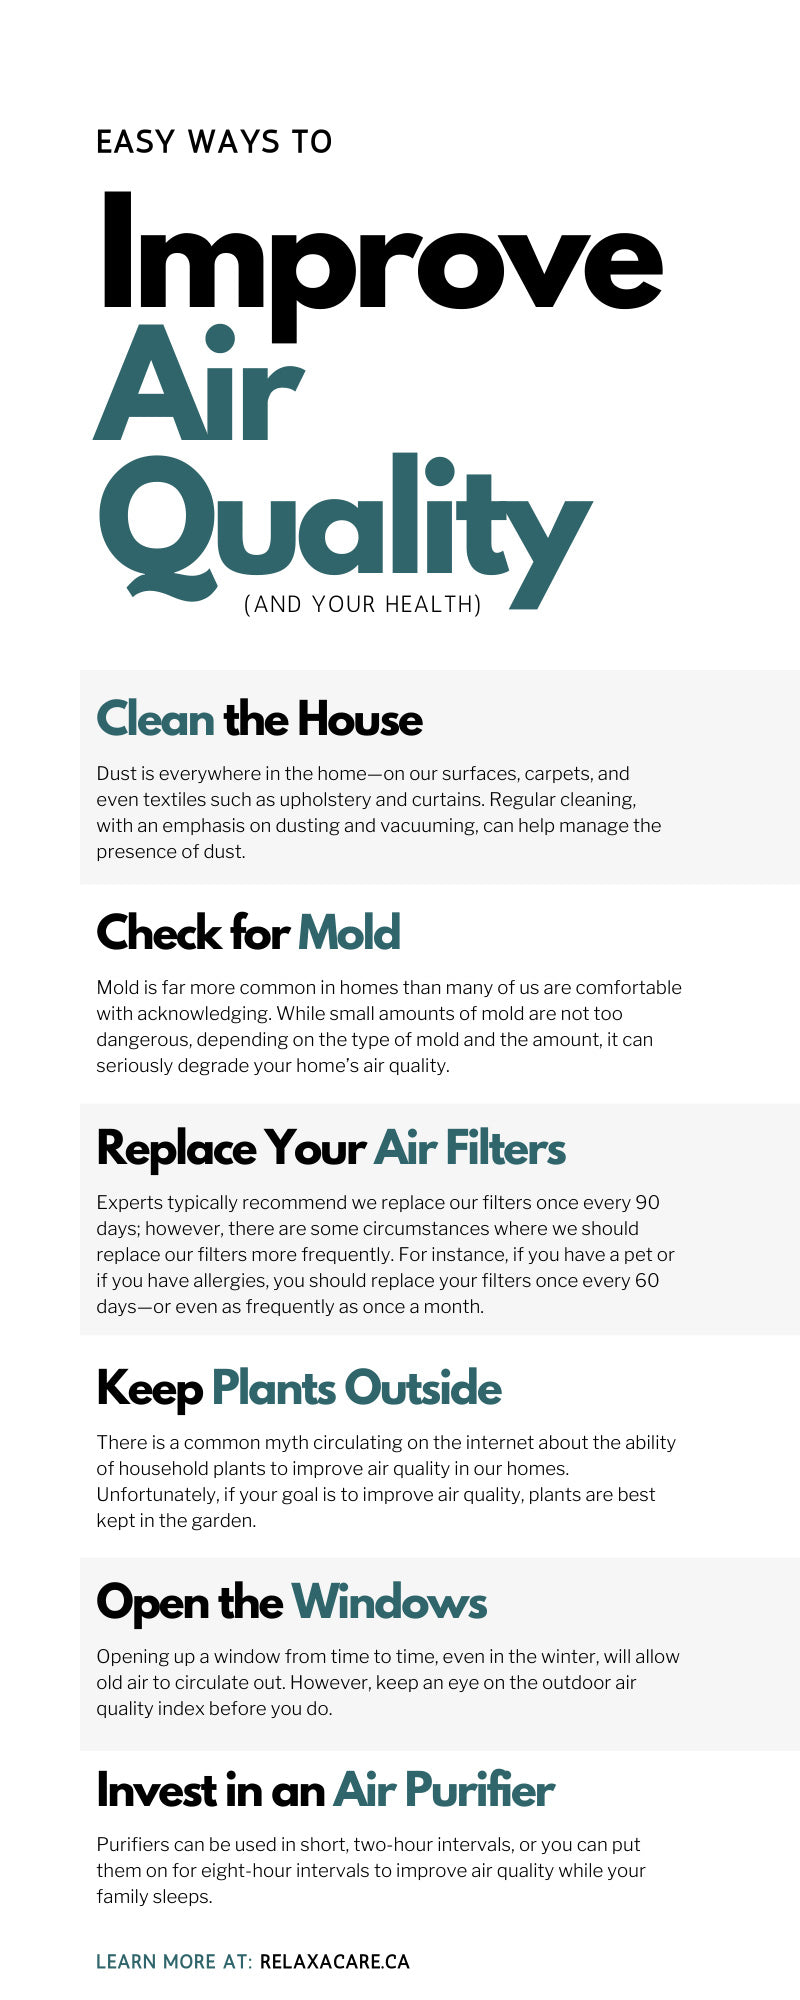 Easy Ways To Improve Air Quality (and Your Health)